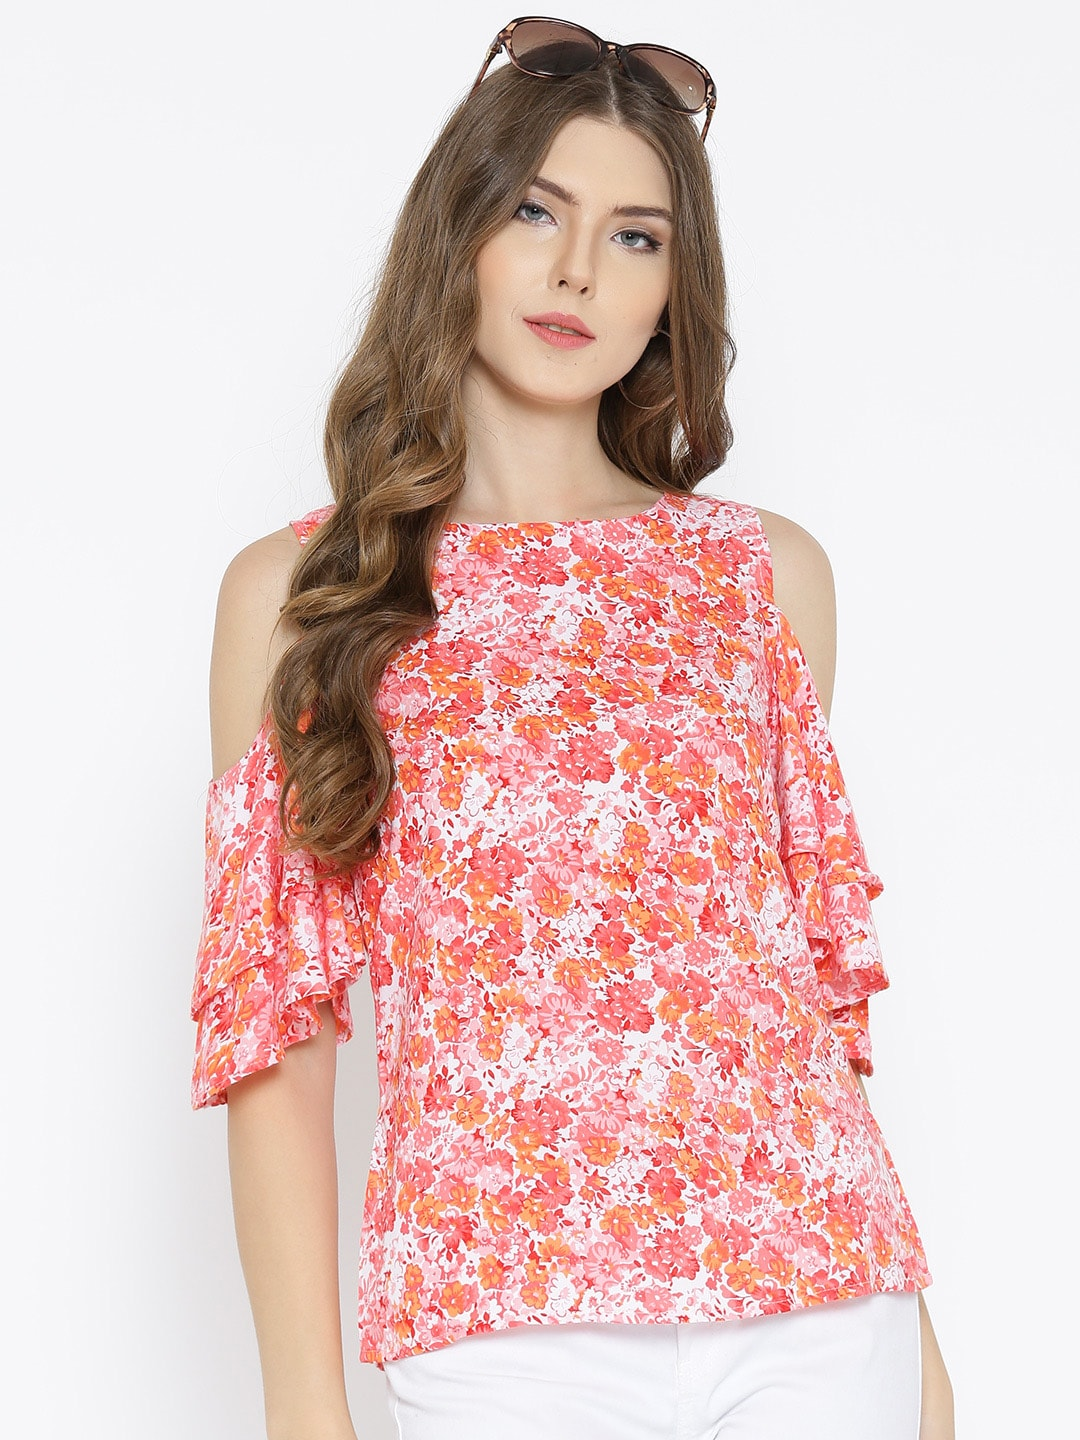 d5ce4d78eec538 Cold Shoulder Tops - Buy Cold Shoulder Tops for Women Online - Myntra